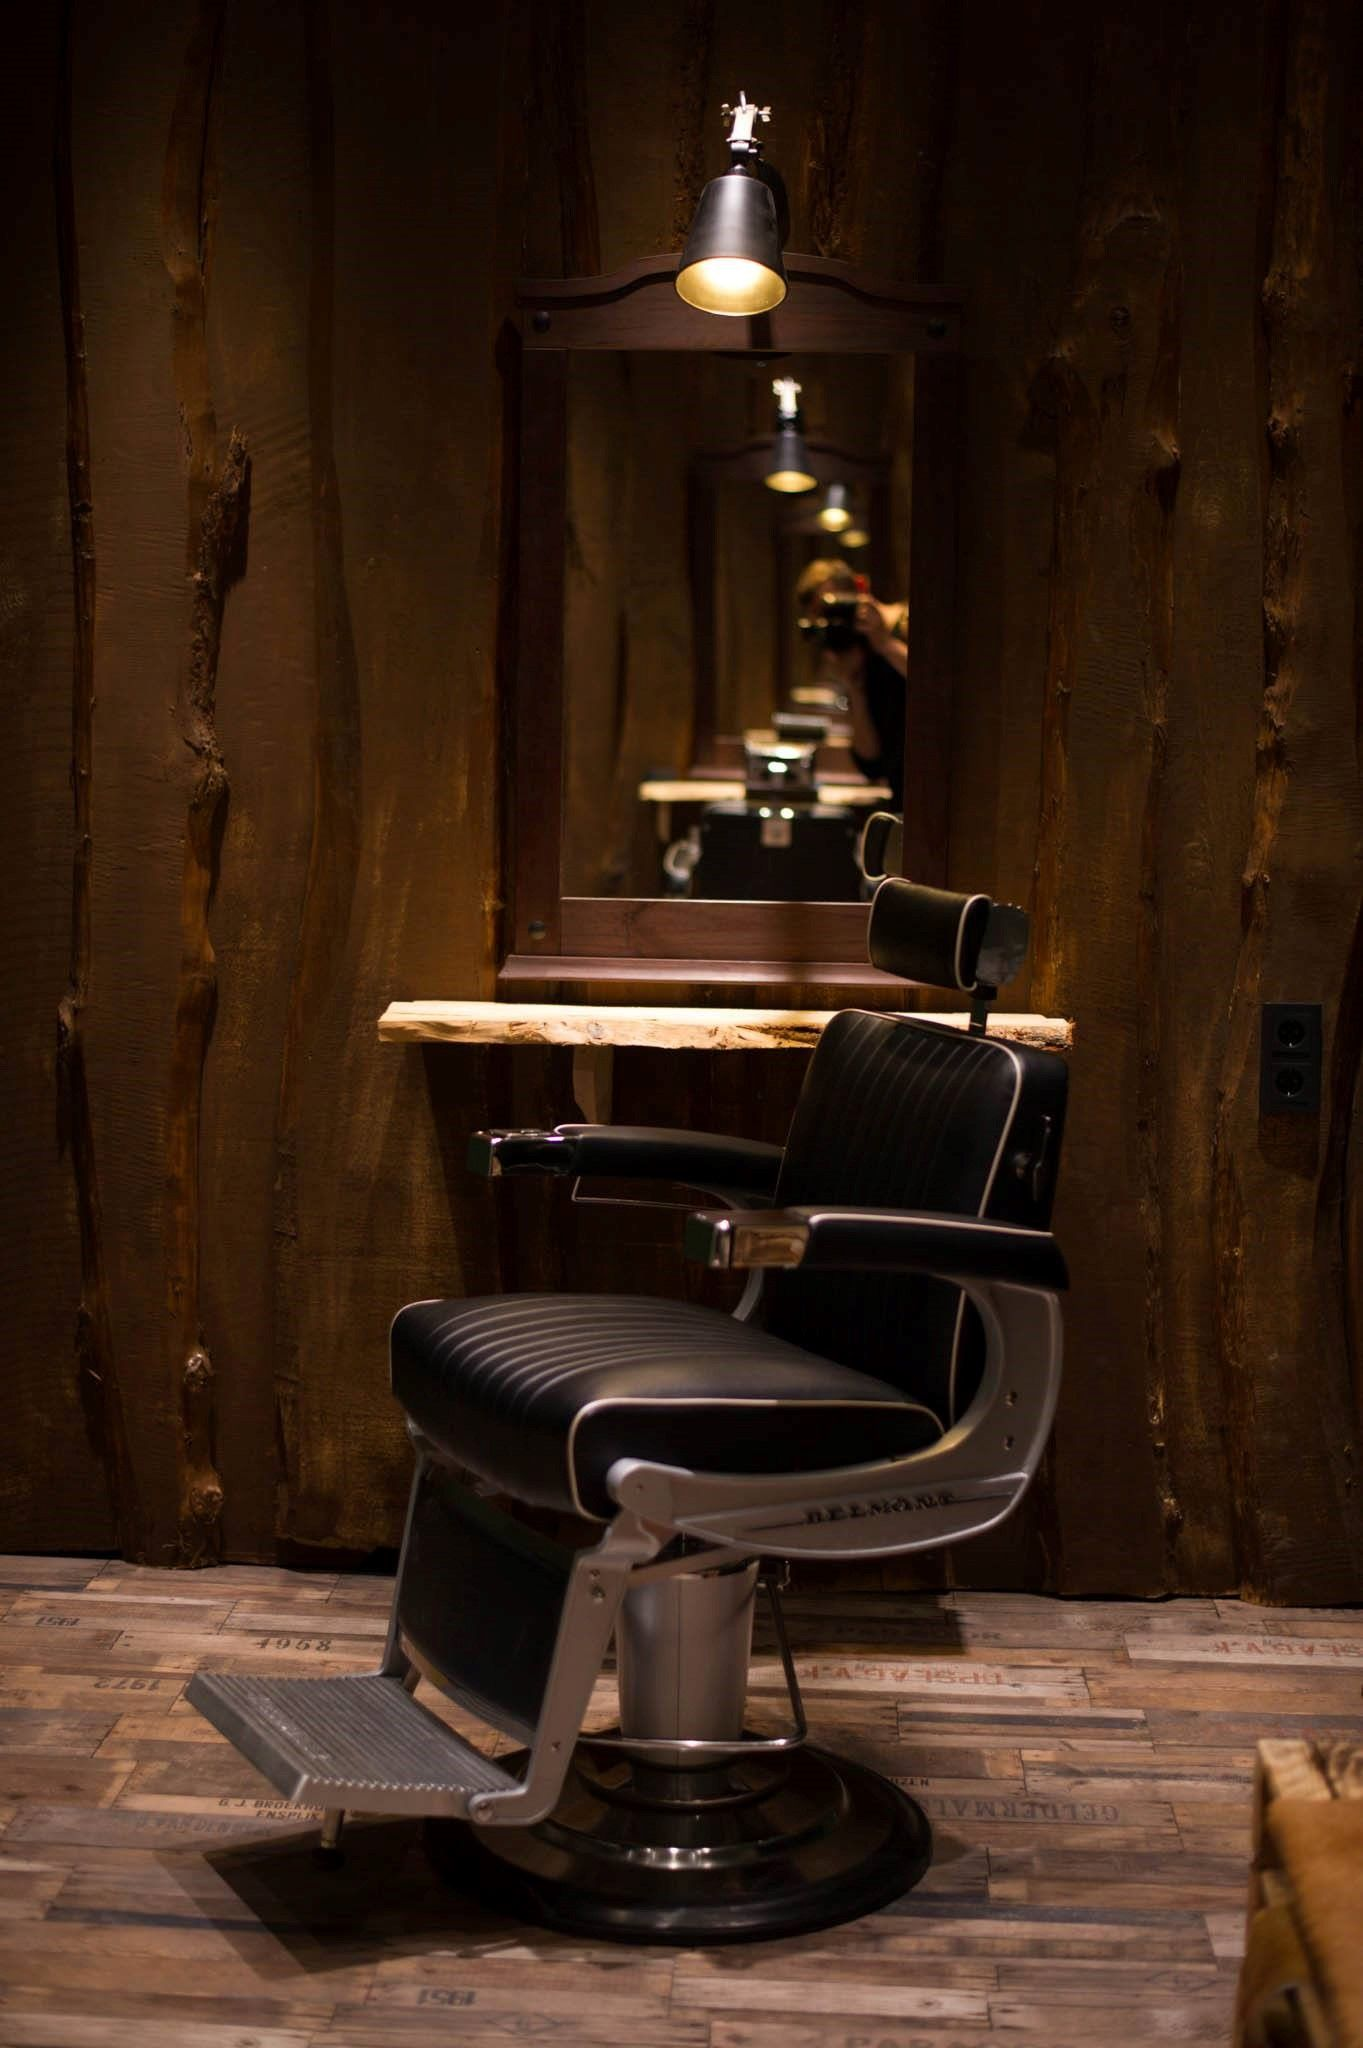 Salon Louise & Fred Munich Barbering Room with APOLLO II Chair